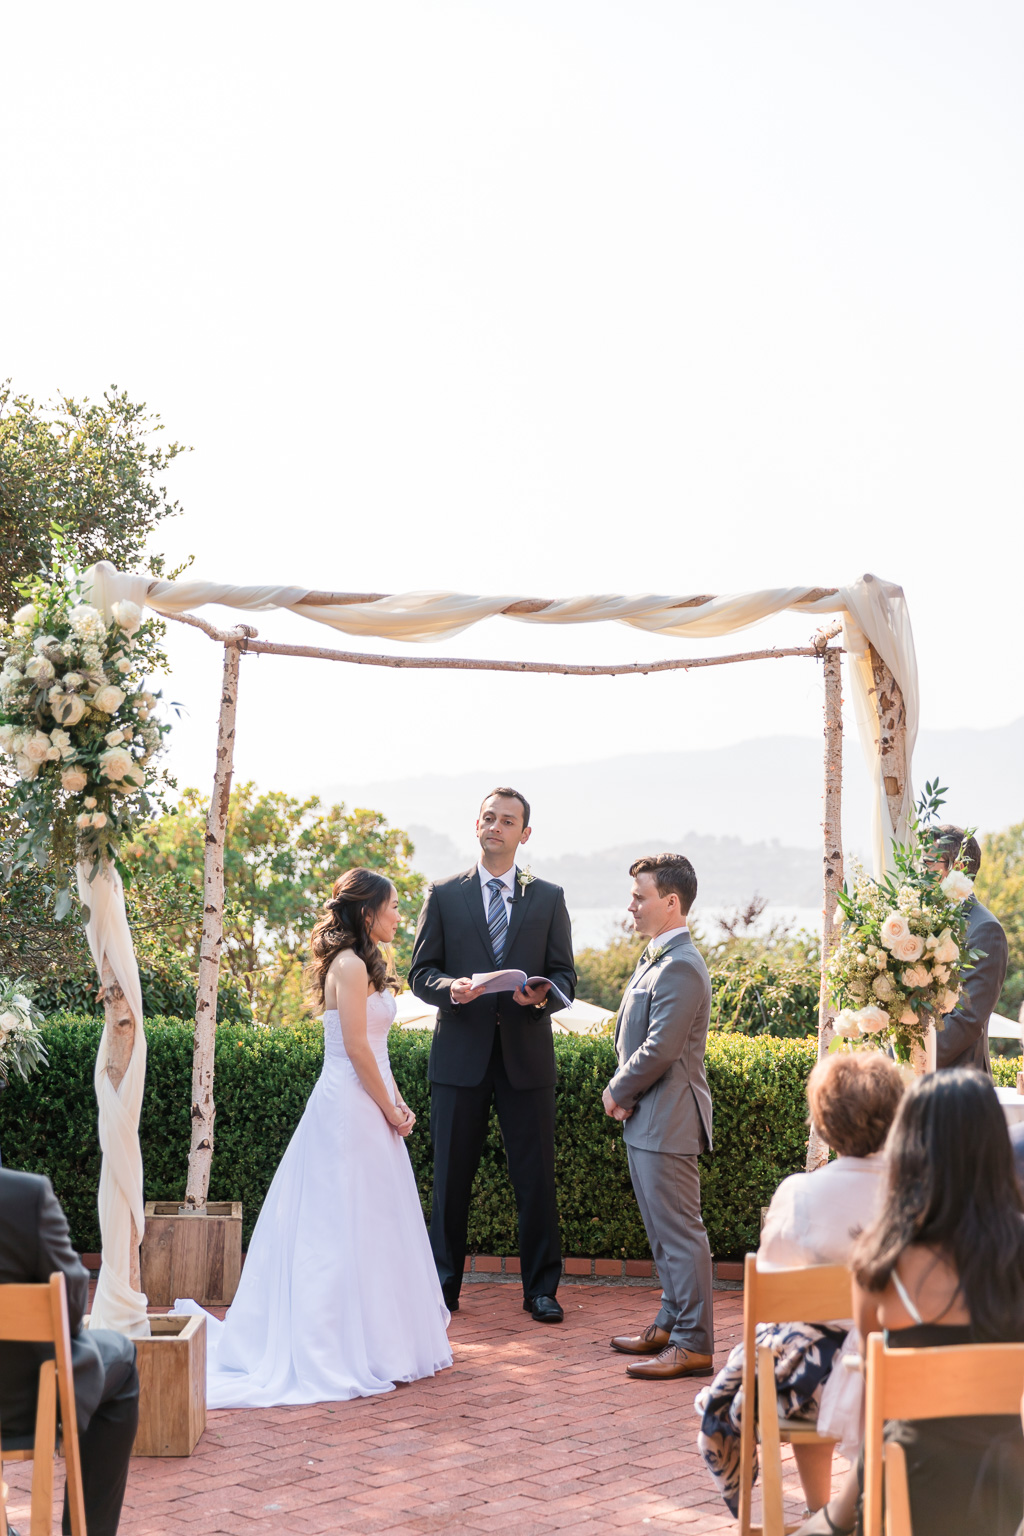 wedding ceremony at Landmarks Art & Garden Center in Tiburon